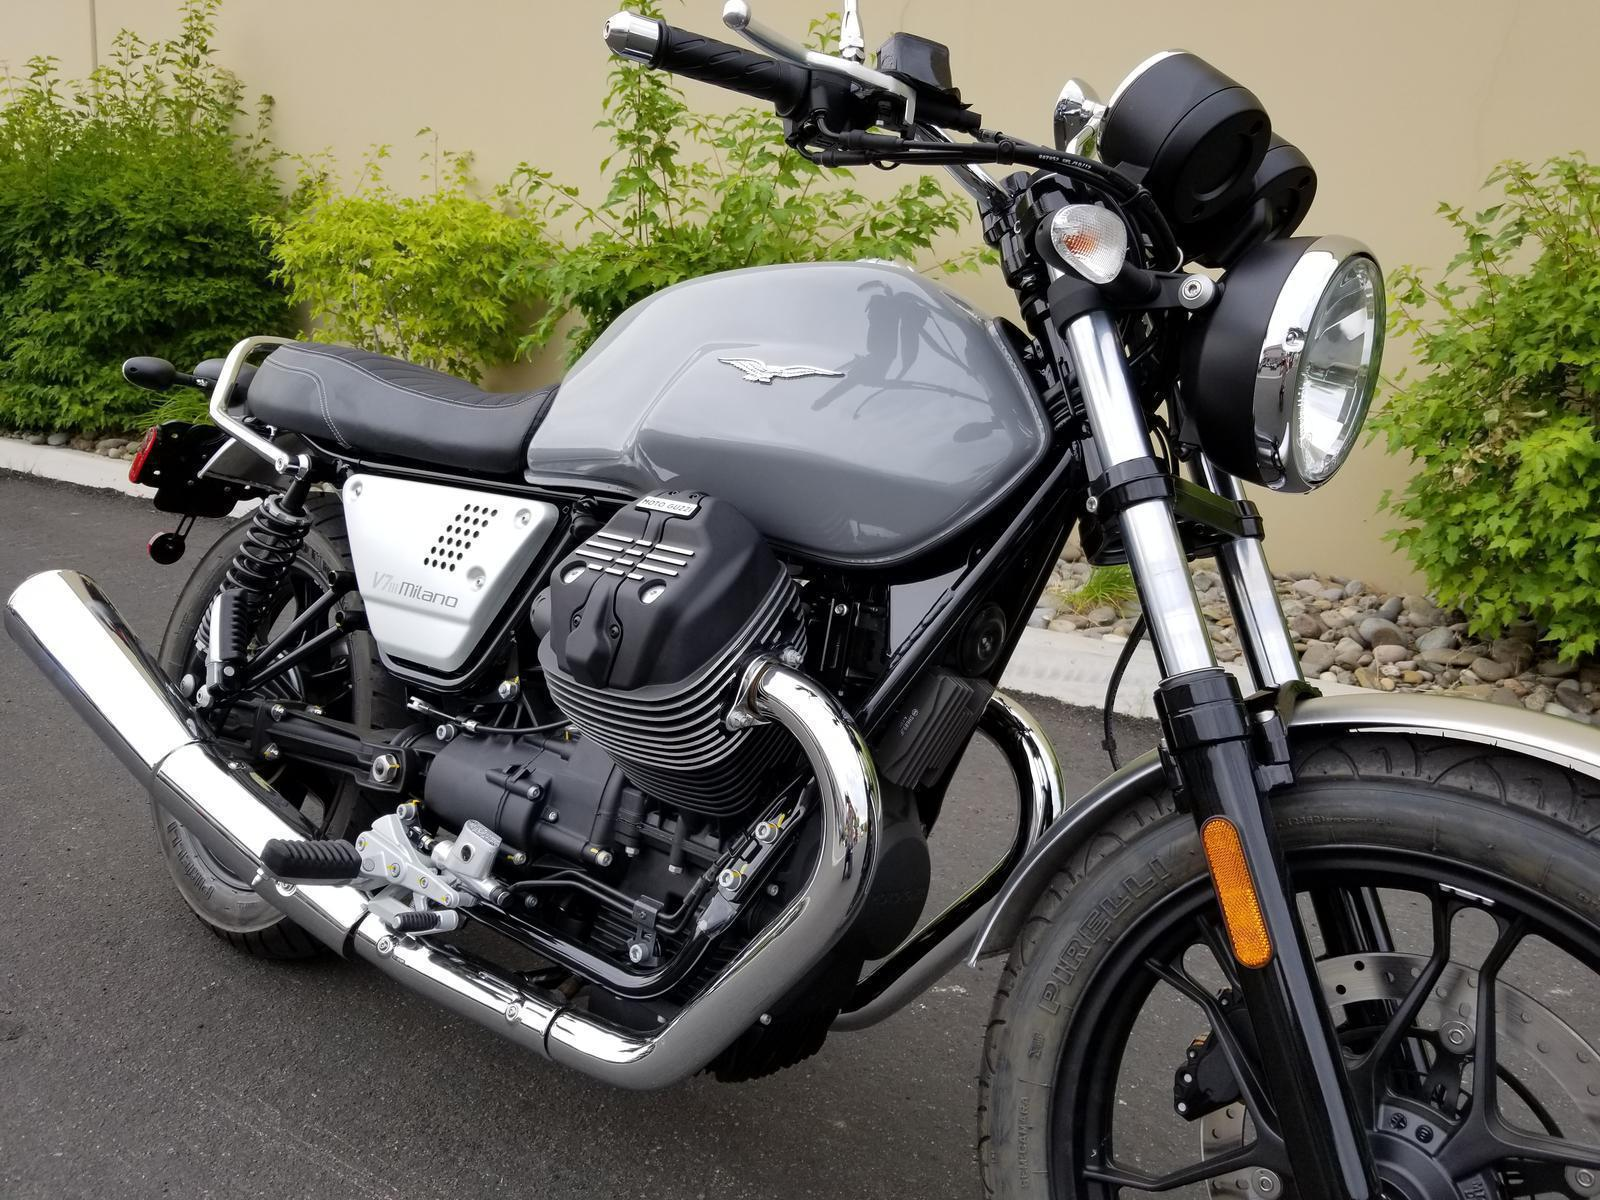 2018 Moto Guzzi V7 Iii Milano For Sale In Reno Nv Euro Cycle Reno